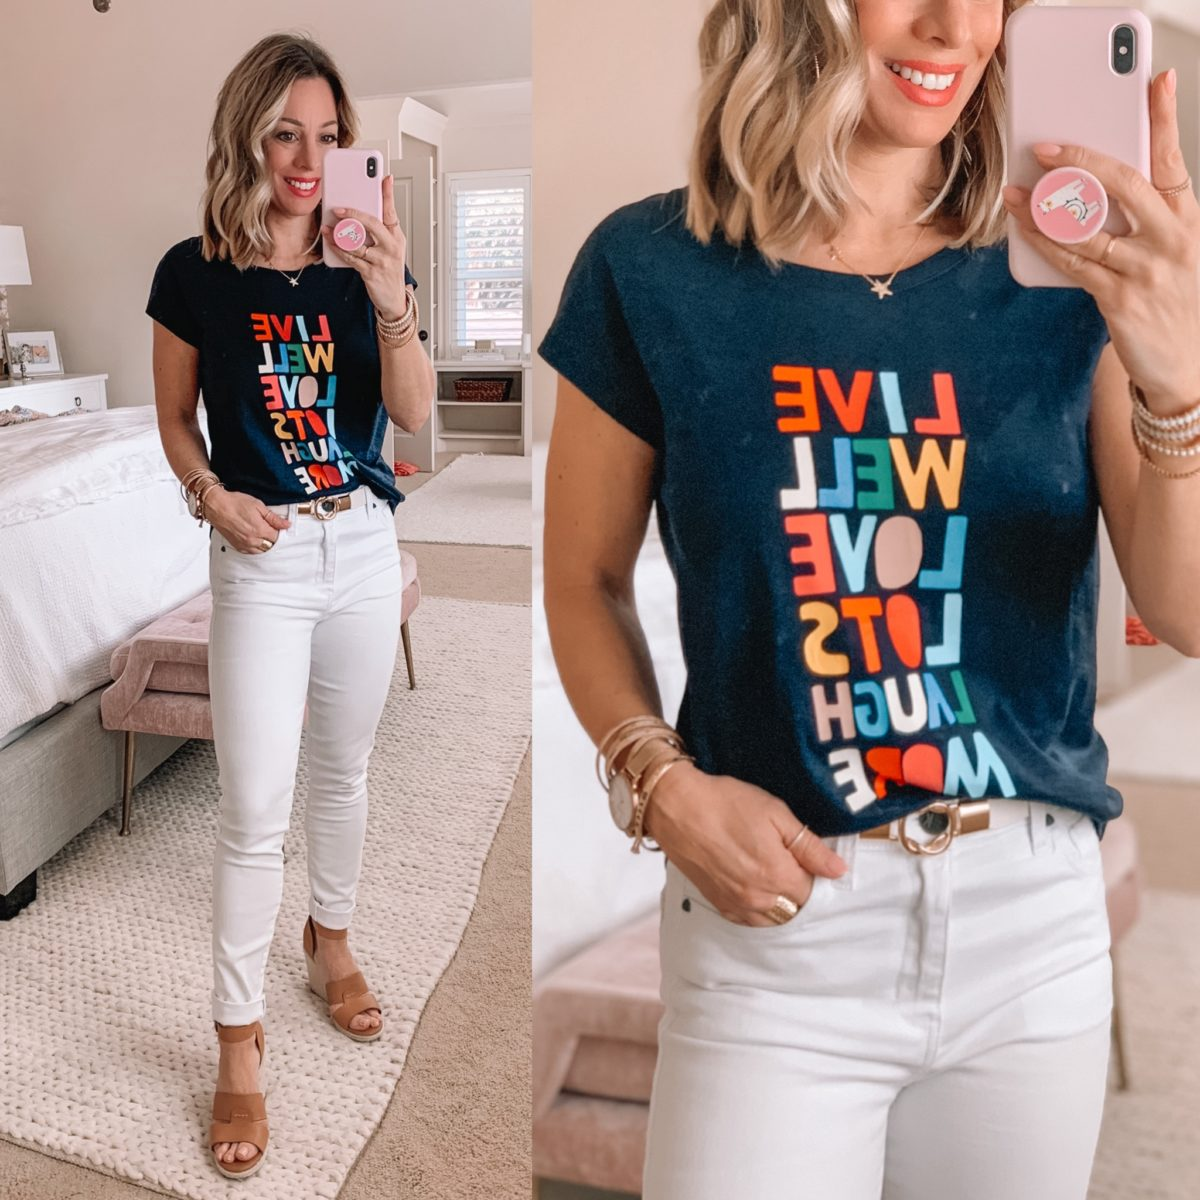 Graphic Tee, White Skinny Jeans, Wedge Heels, Star Necklace